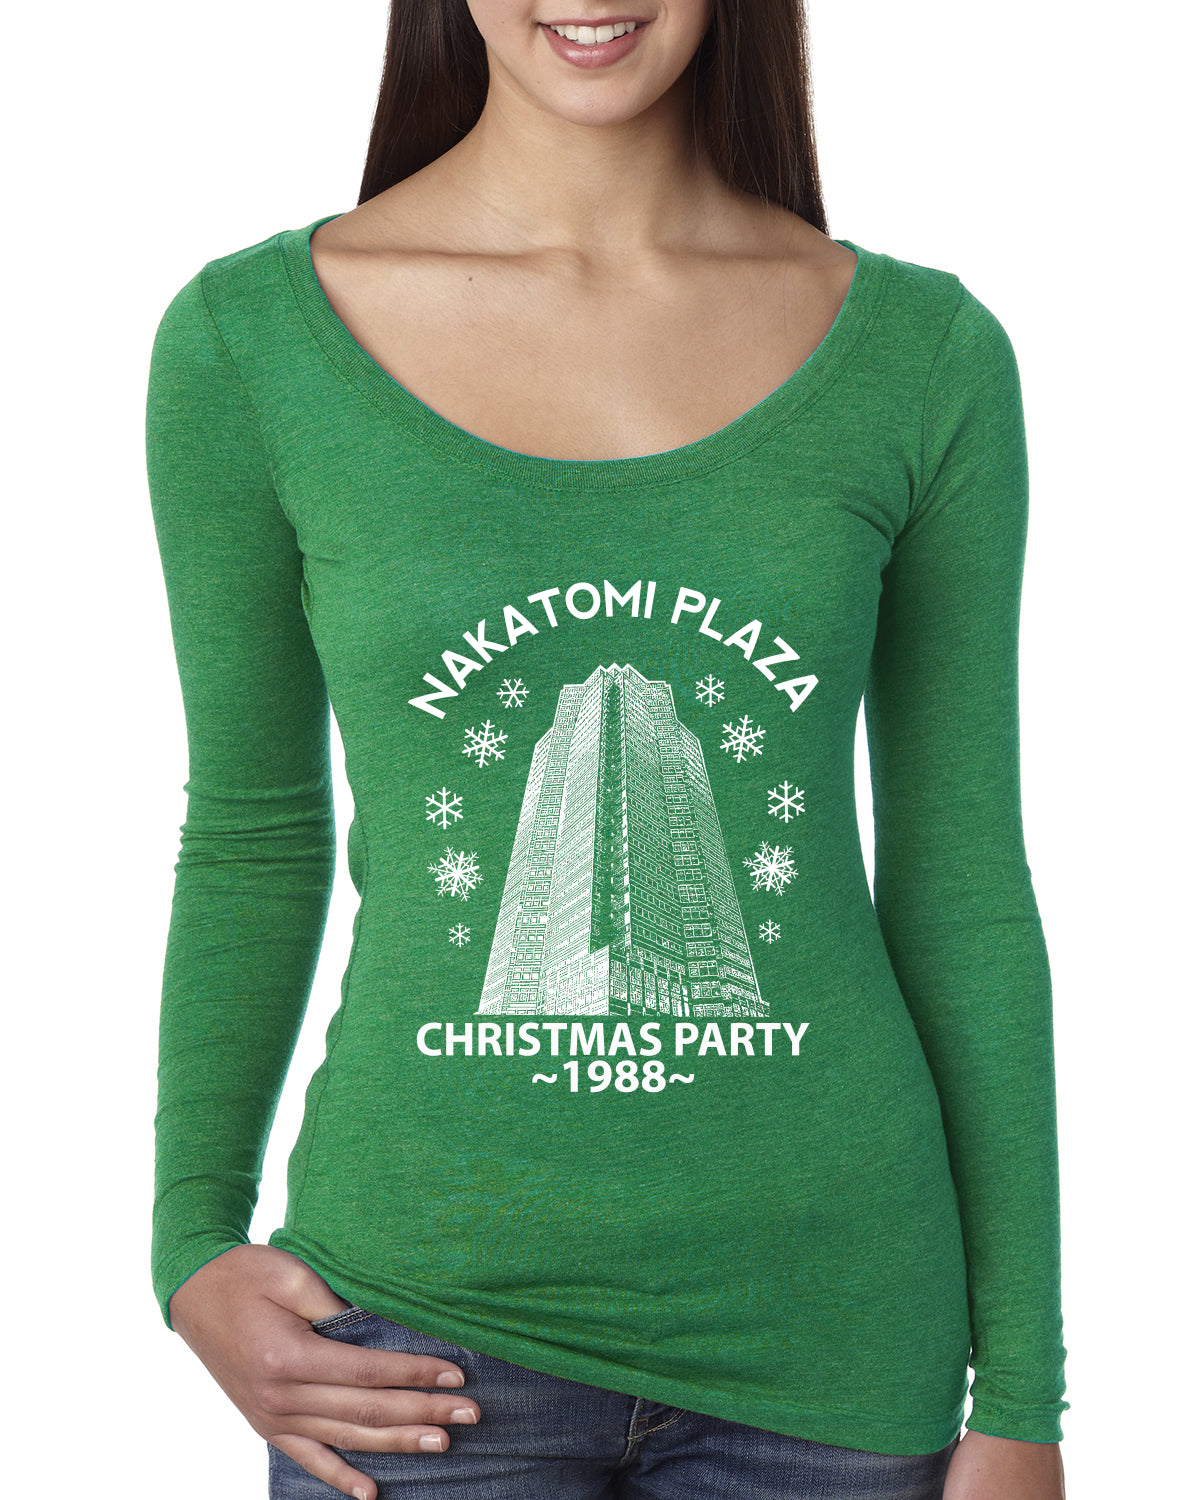 Nakatomi Plaza Christmas Party 1988 Classic McClane Die Hard Christmas Womens Scoop Long Sleeve Top